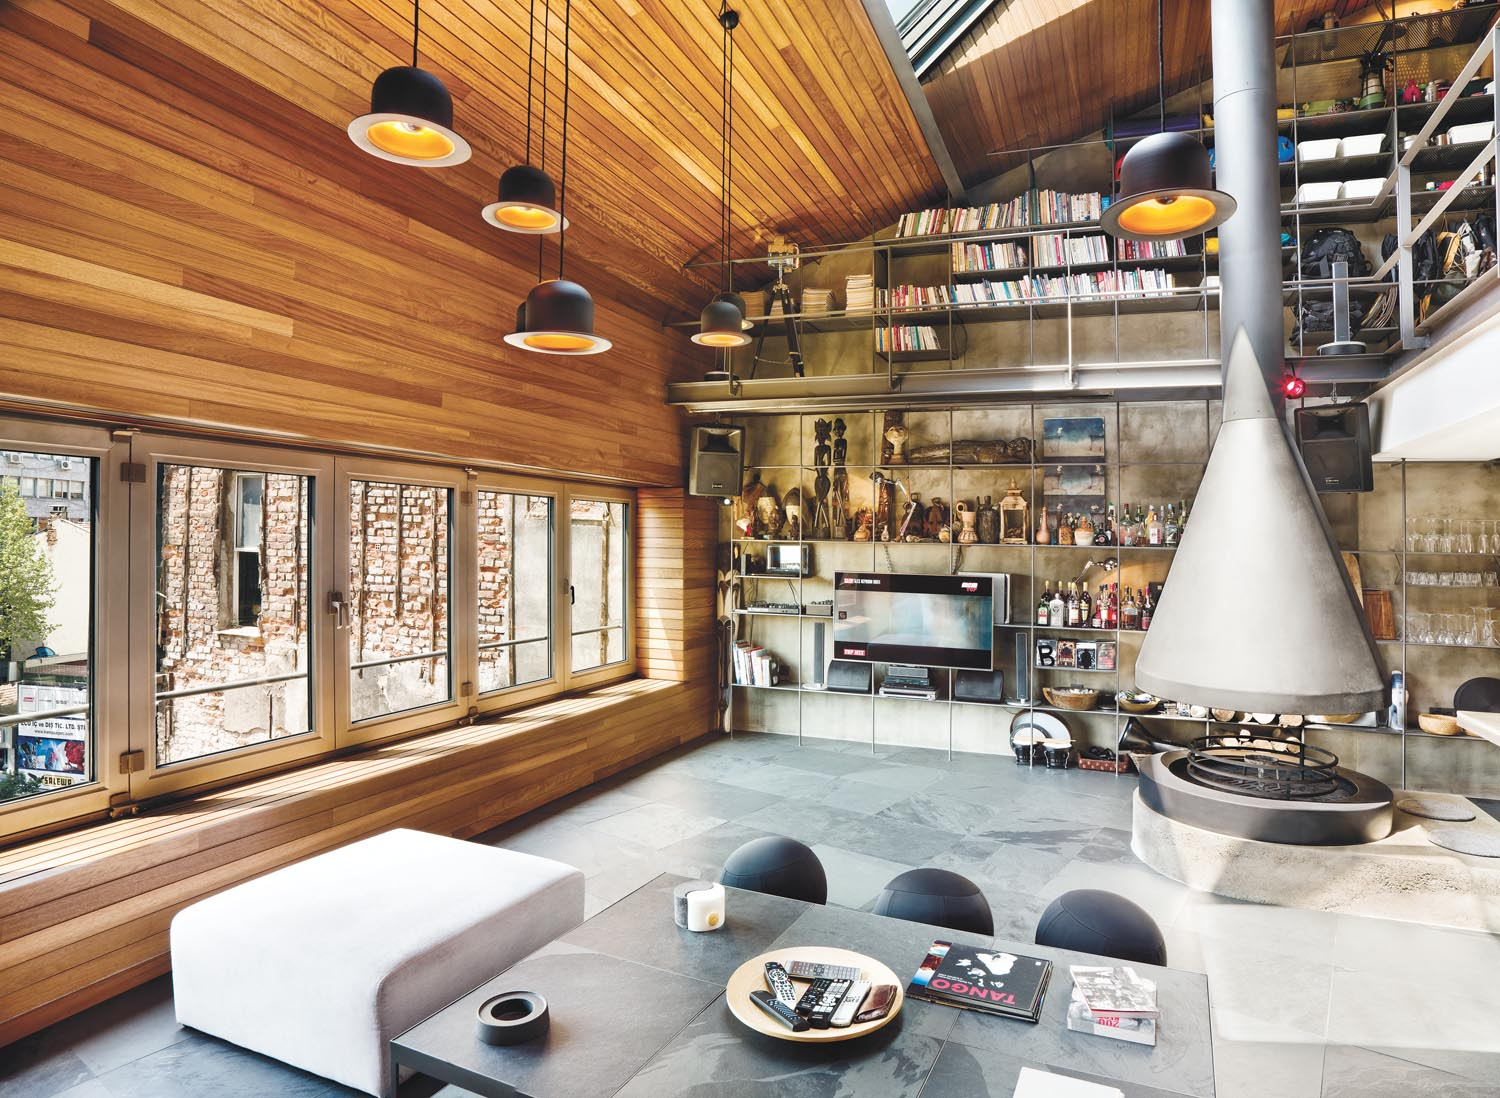 Real penthouse: Turkish delight